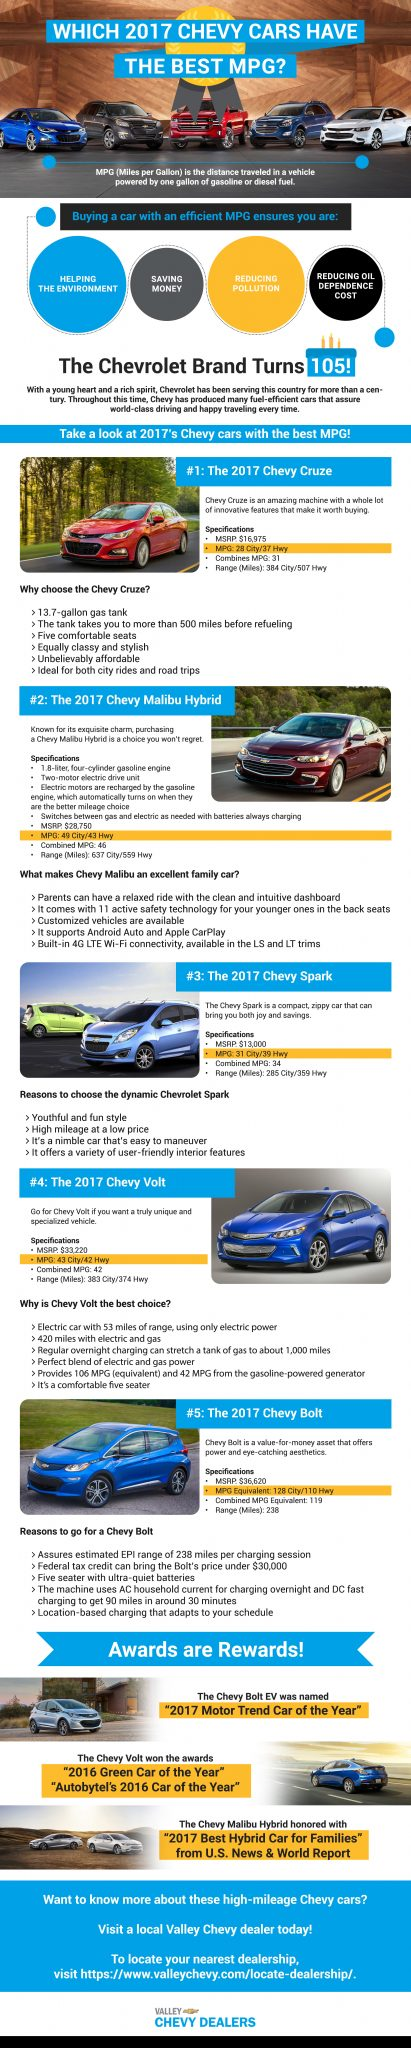 infographic 2017 chevrolet cars with best gas mileage valley chevy